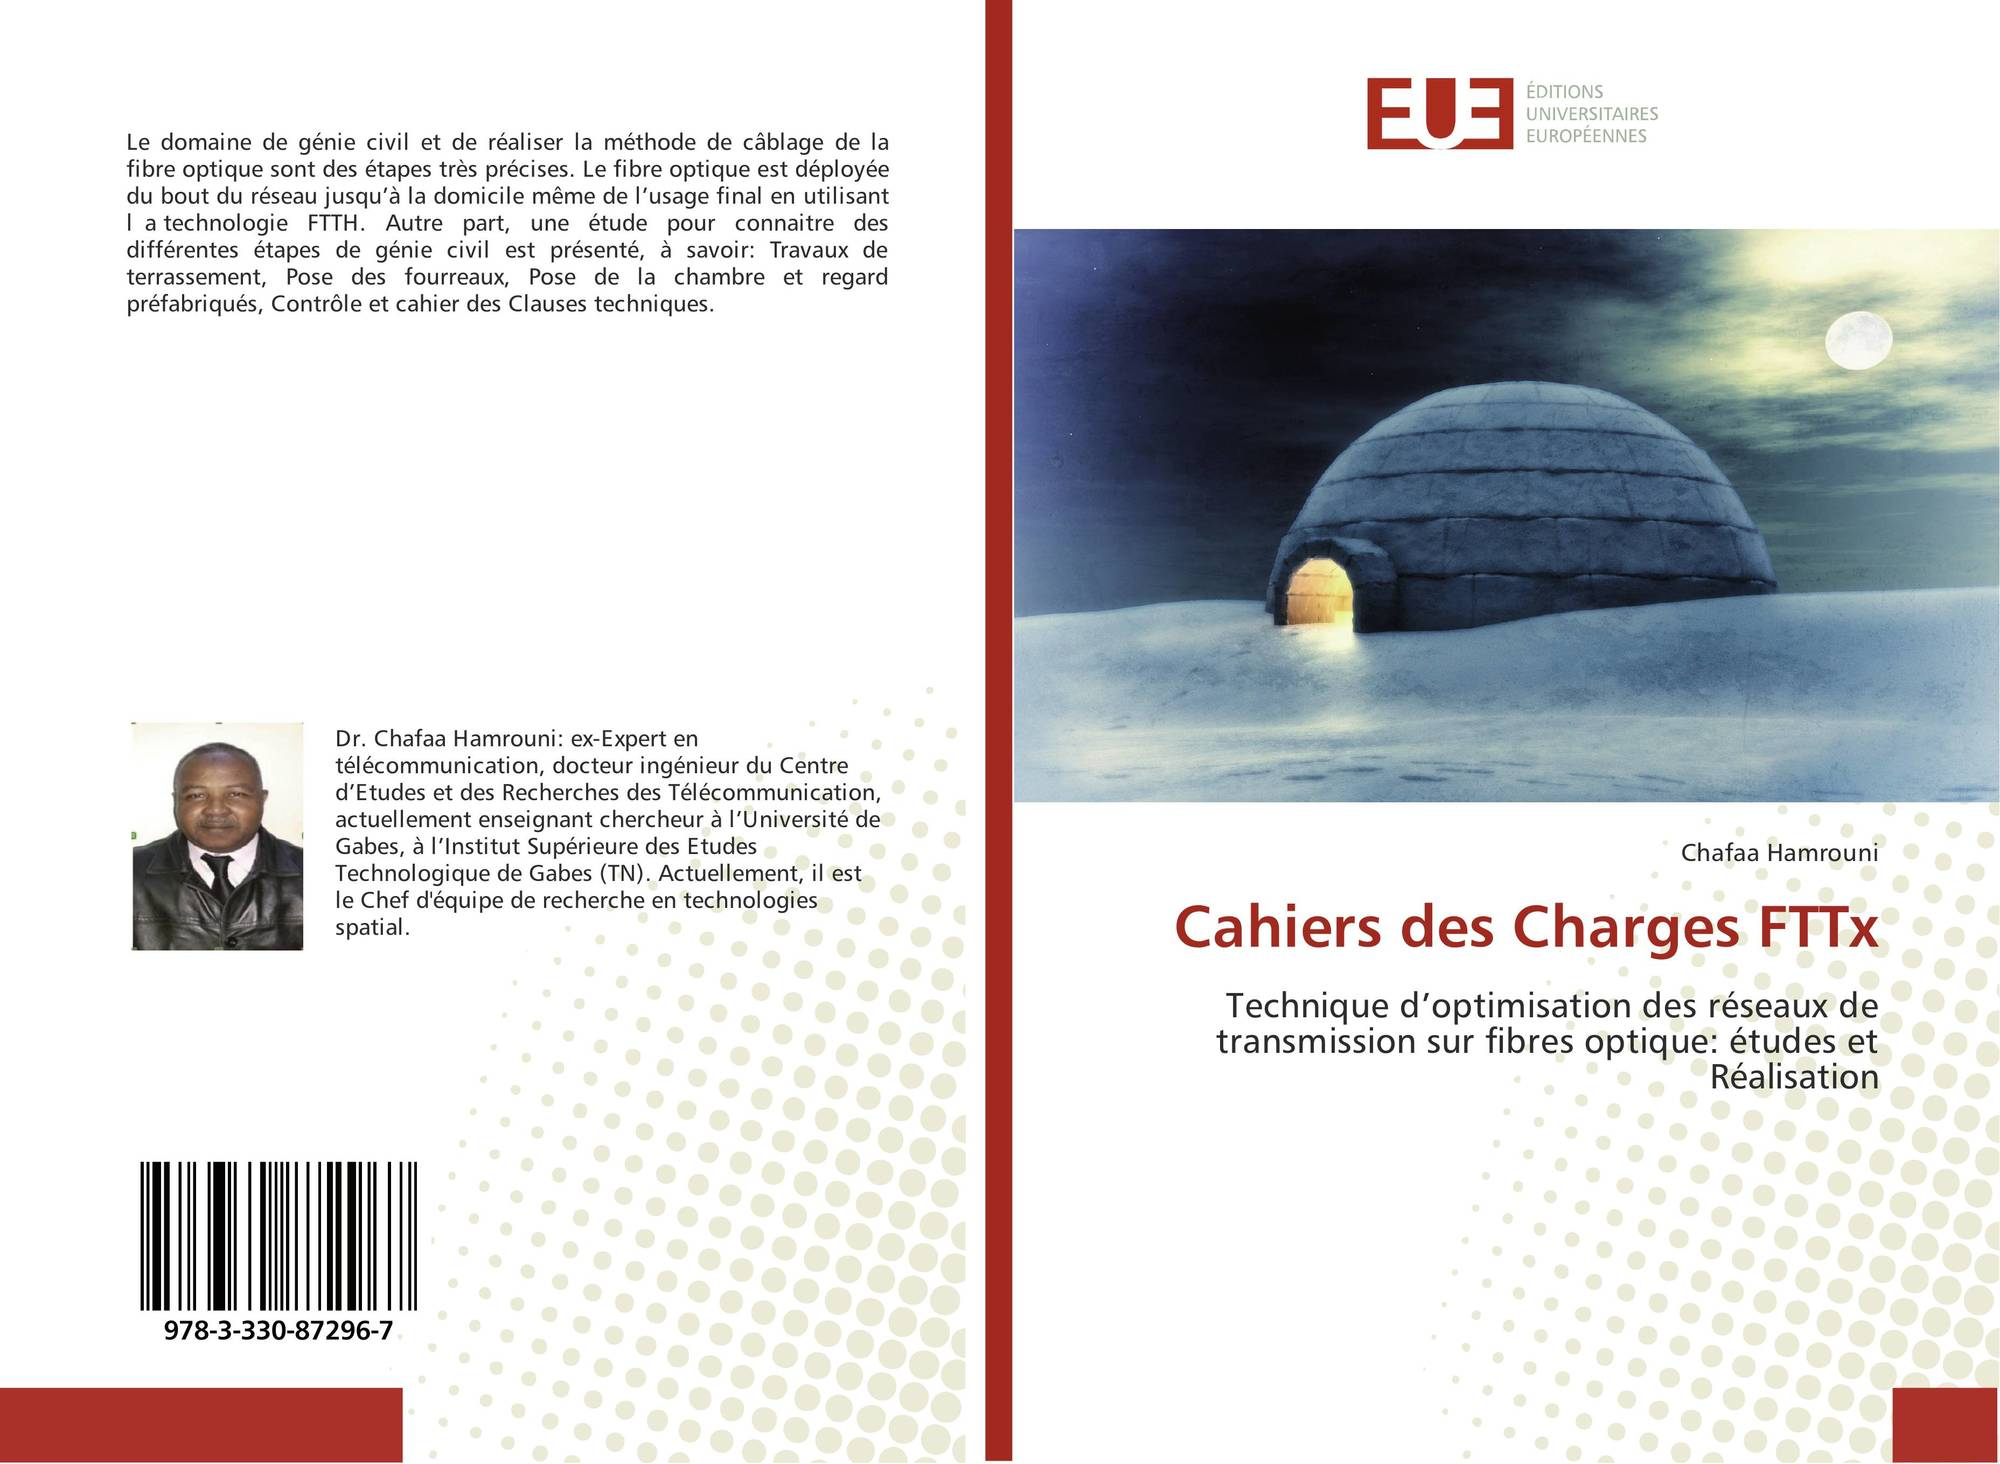 Cahiers des Charges FTTx